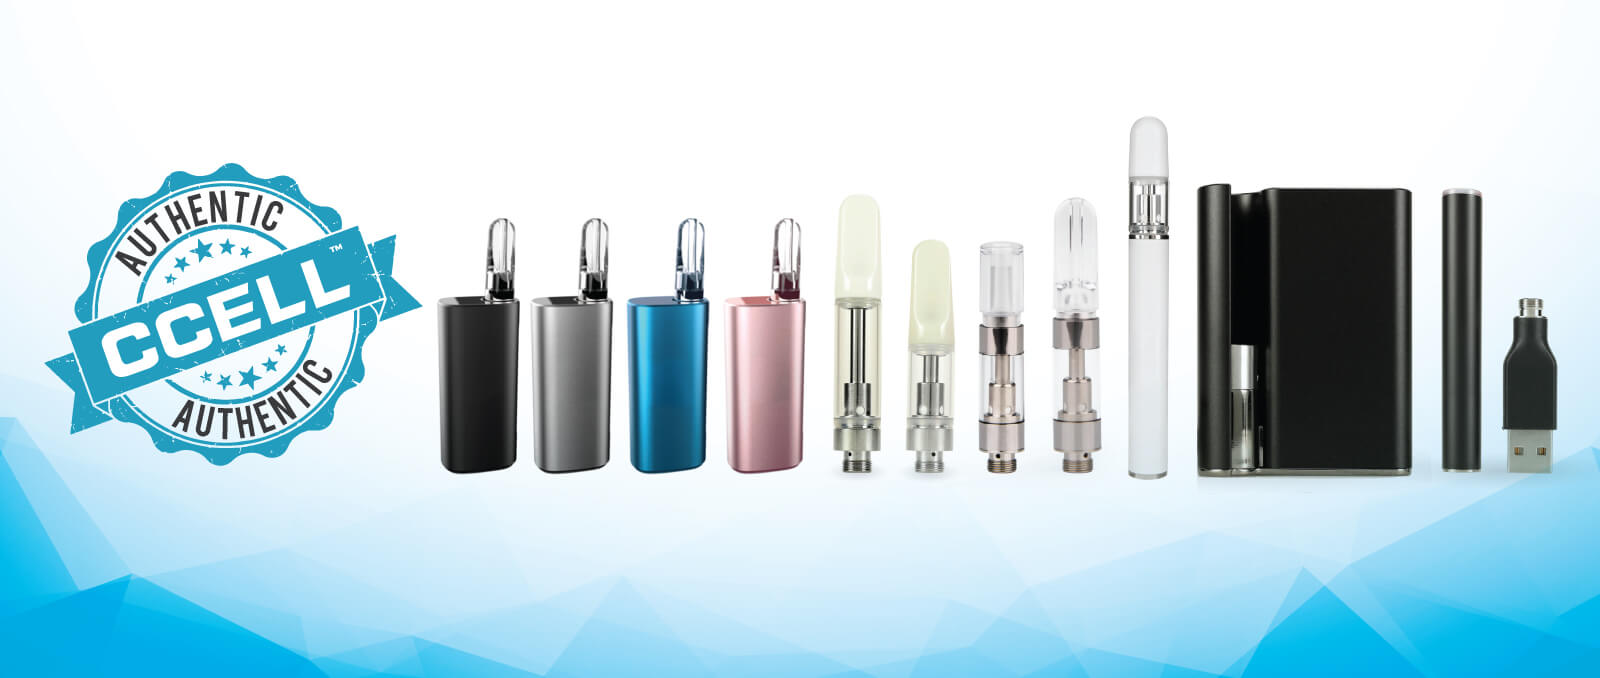 Oji Vape: Wholesale USA Vaping Supplies & Products